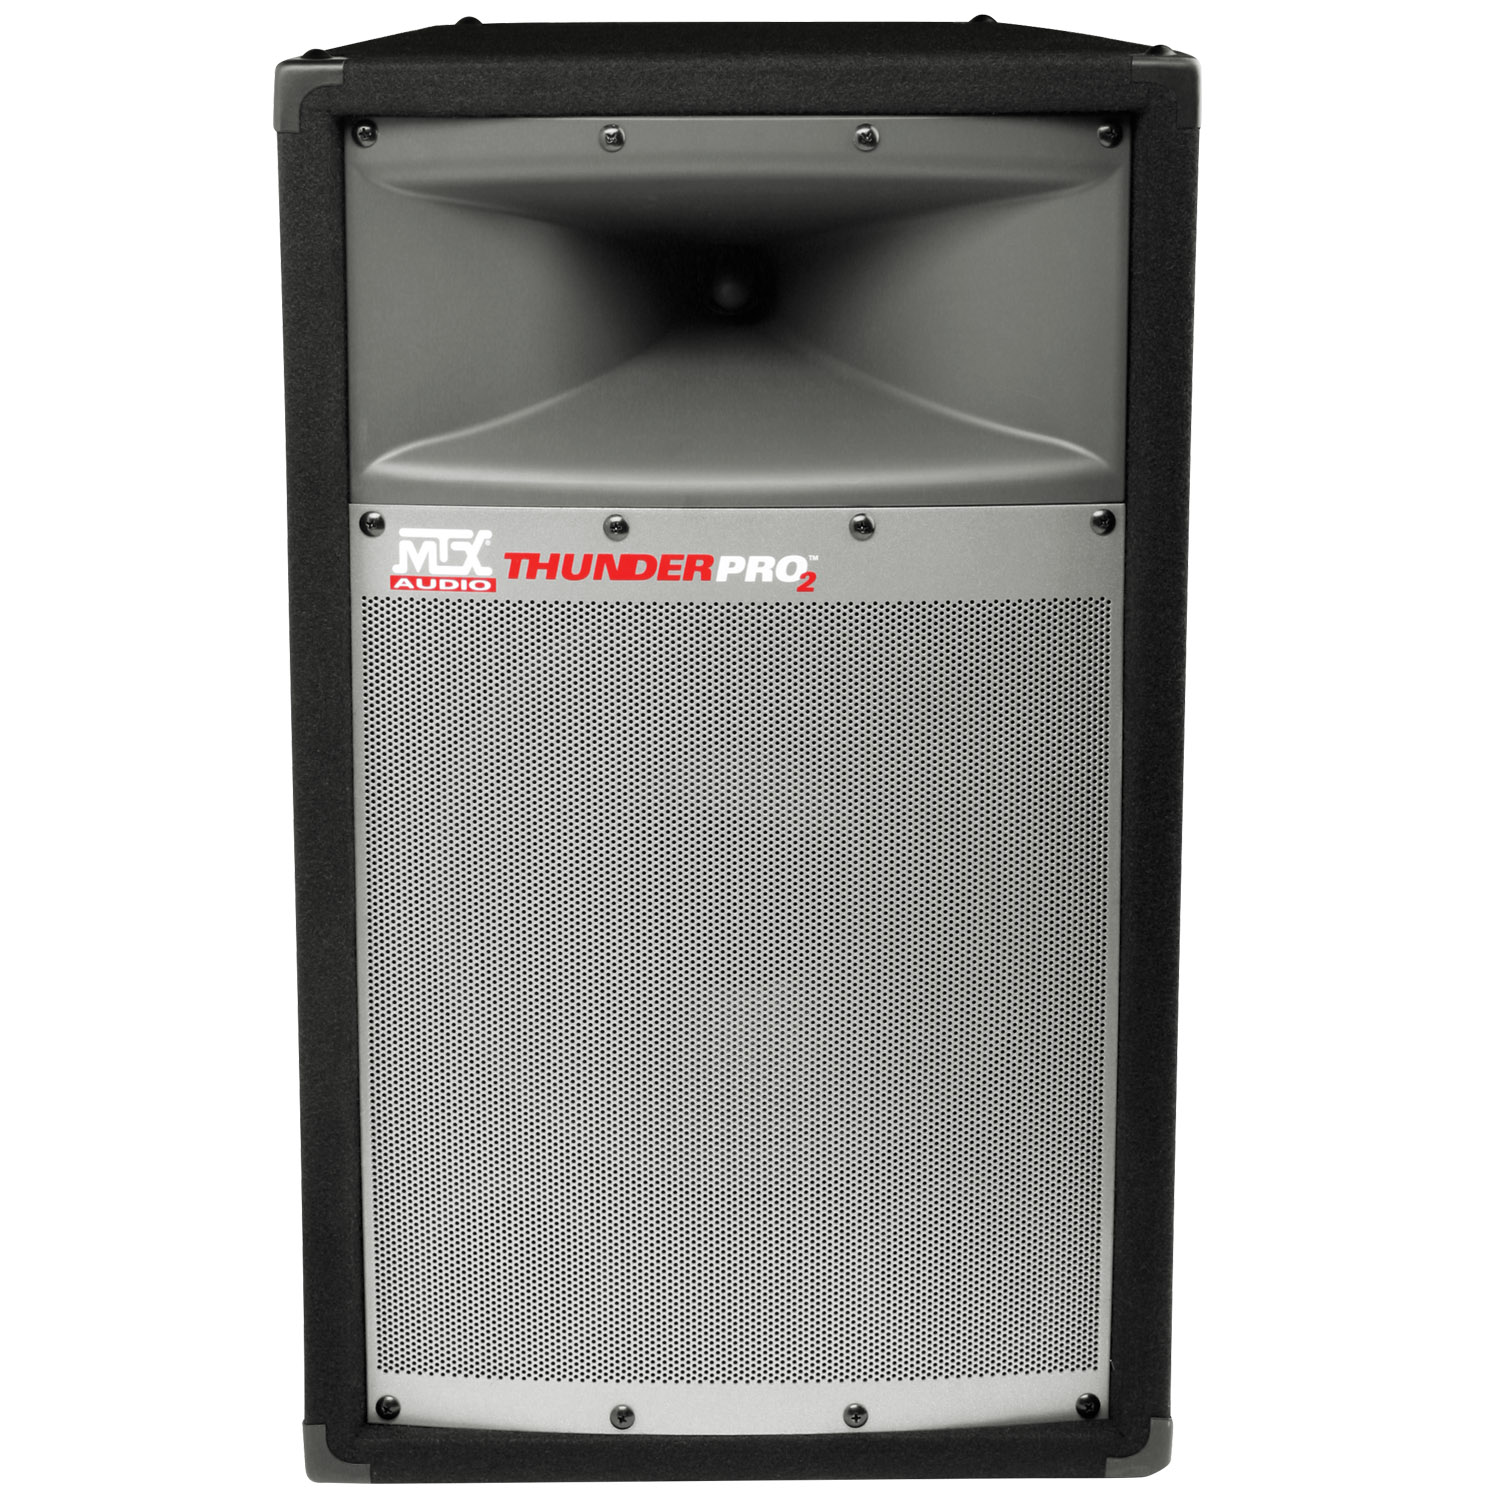 Tp1200 12 Thunderpro Full Range Cabinet Dj Speaker Mtx Audio Piezo Tweeter Wiring Diagram 4 Serious About Sound